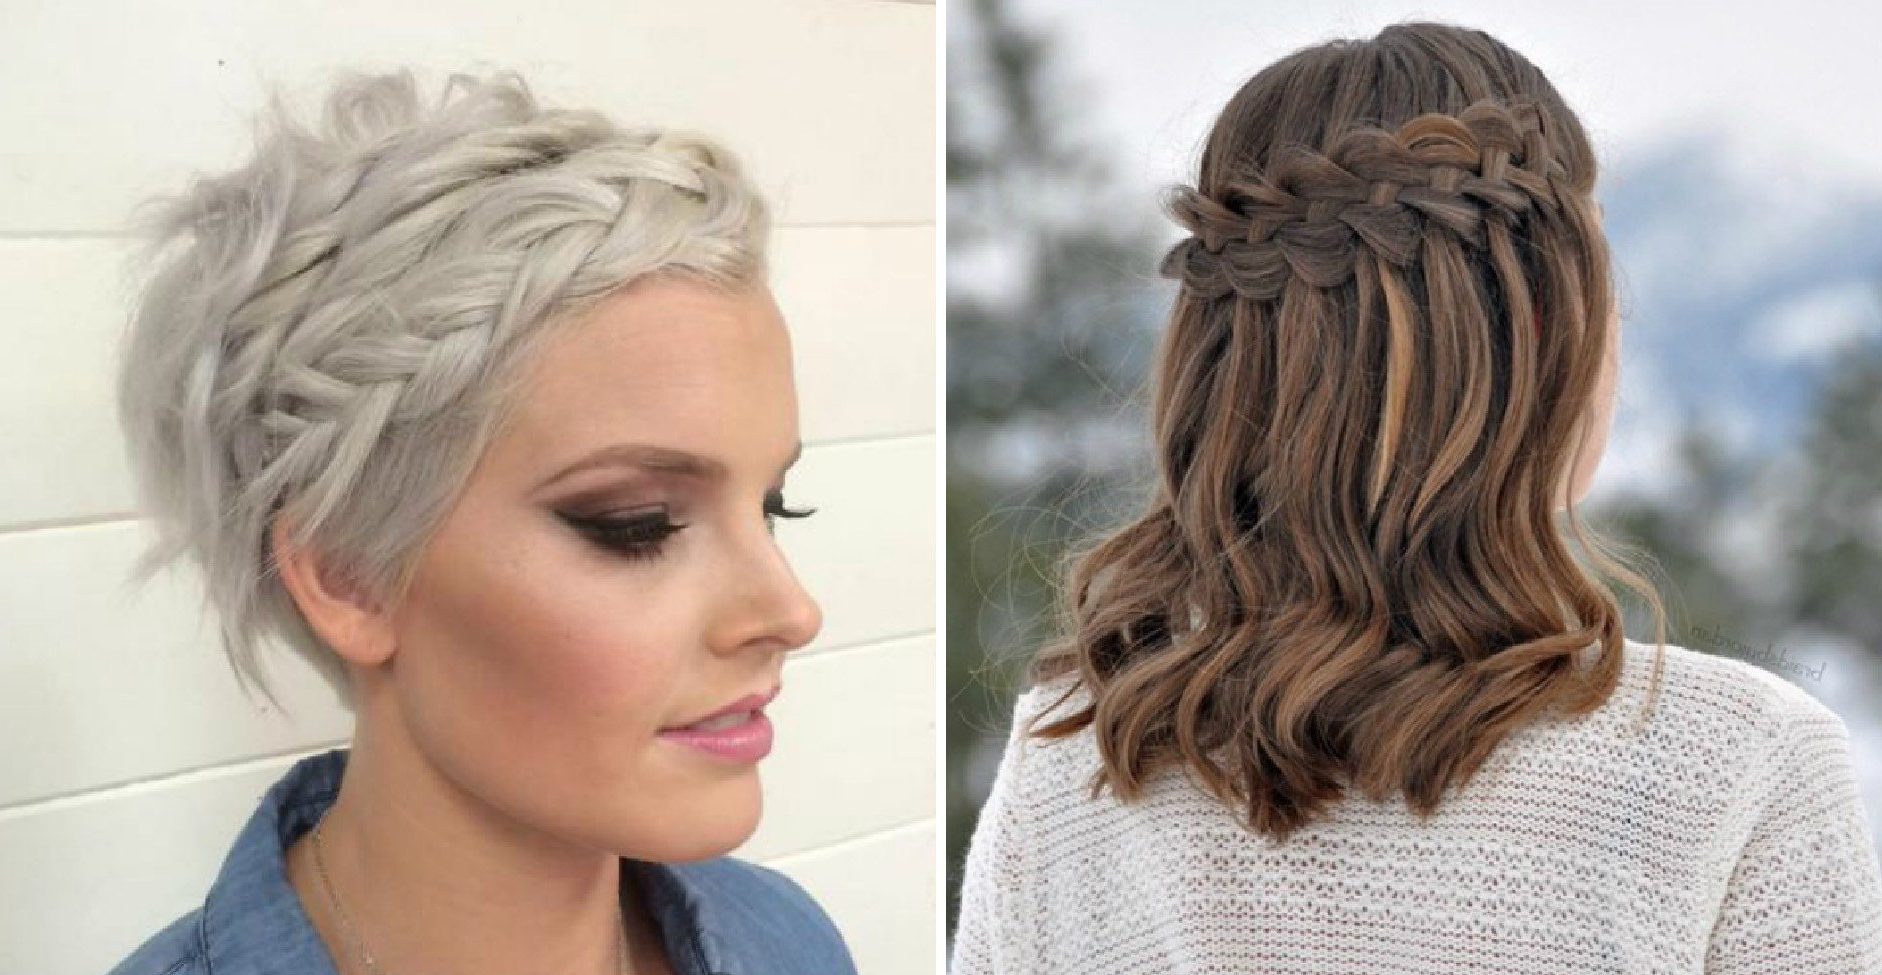 Latest Short Wedding Hairstyles With A Swanky Headband Throughout 29 Swanky Braided Hairstyles To Do On Short Hair – Wild About Beauty (View 14 of 20)